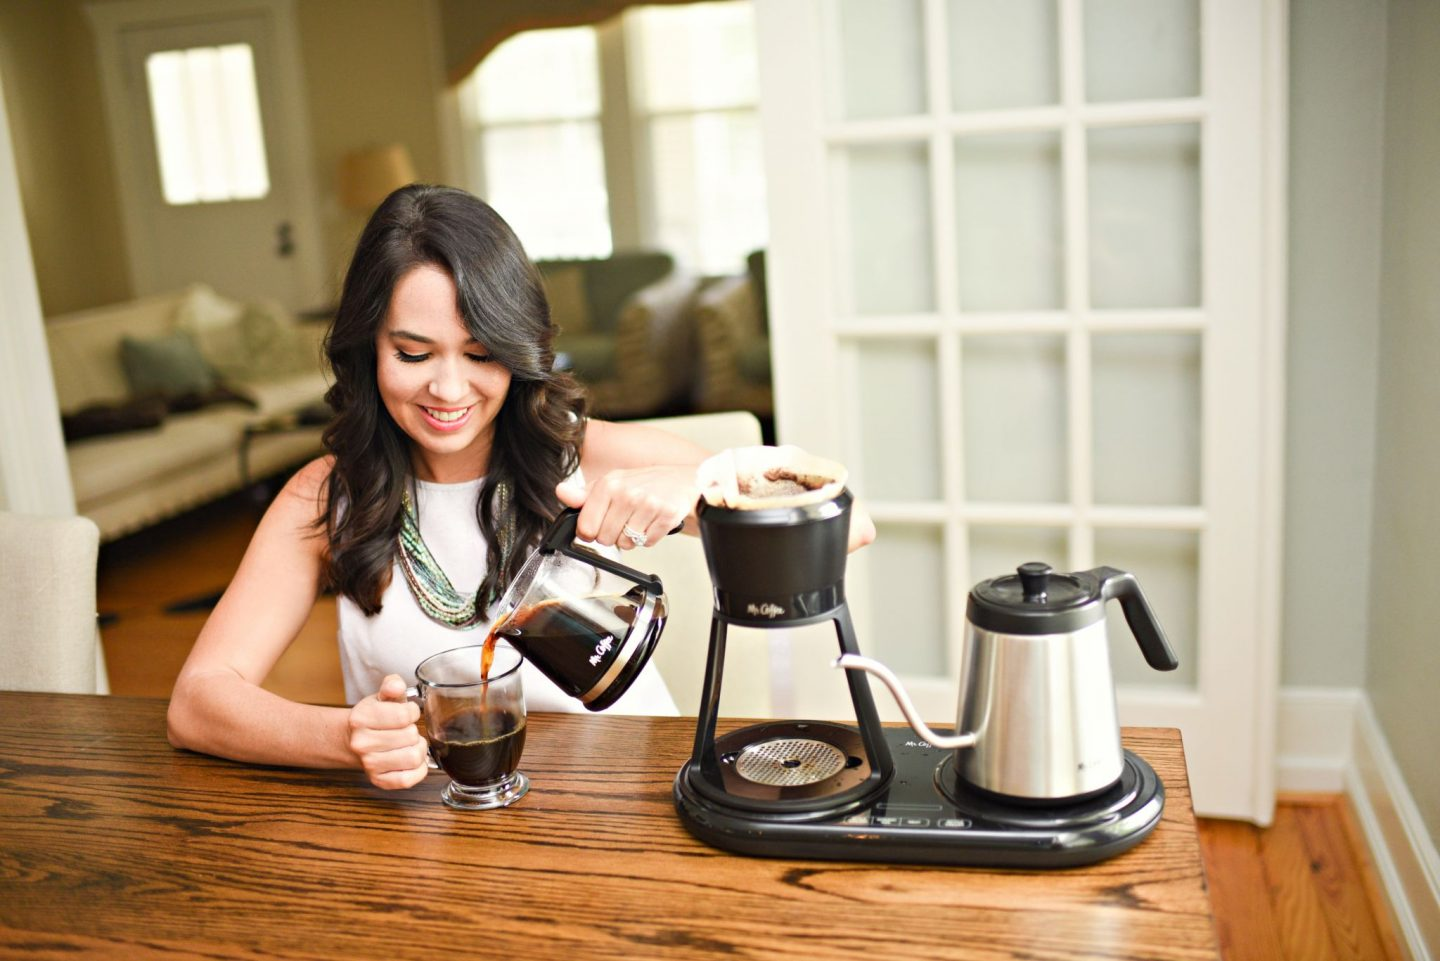 One brewing modality that has always been daunting to try is the pour over method. Here is how to make the perfect pour over coffee!